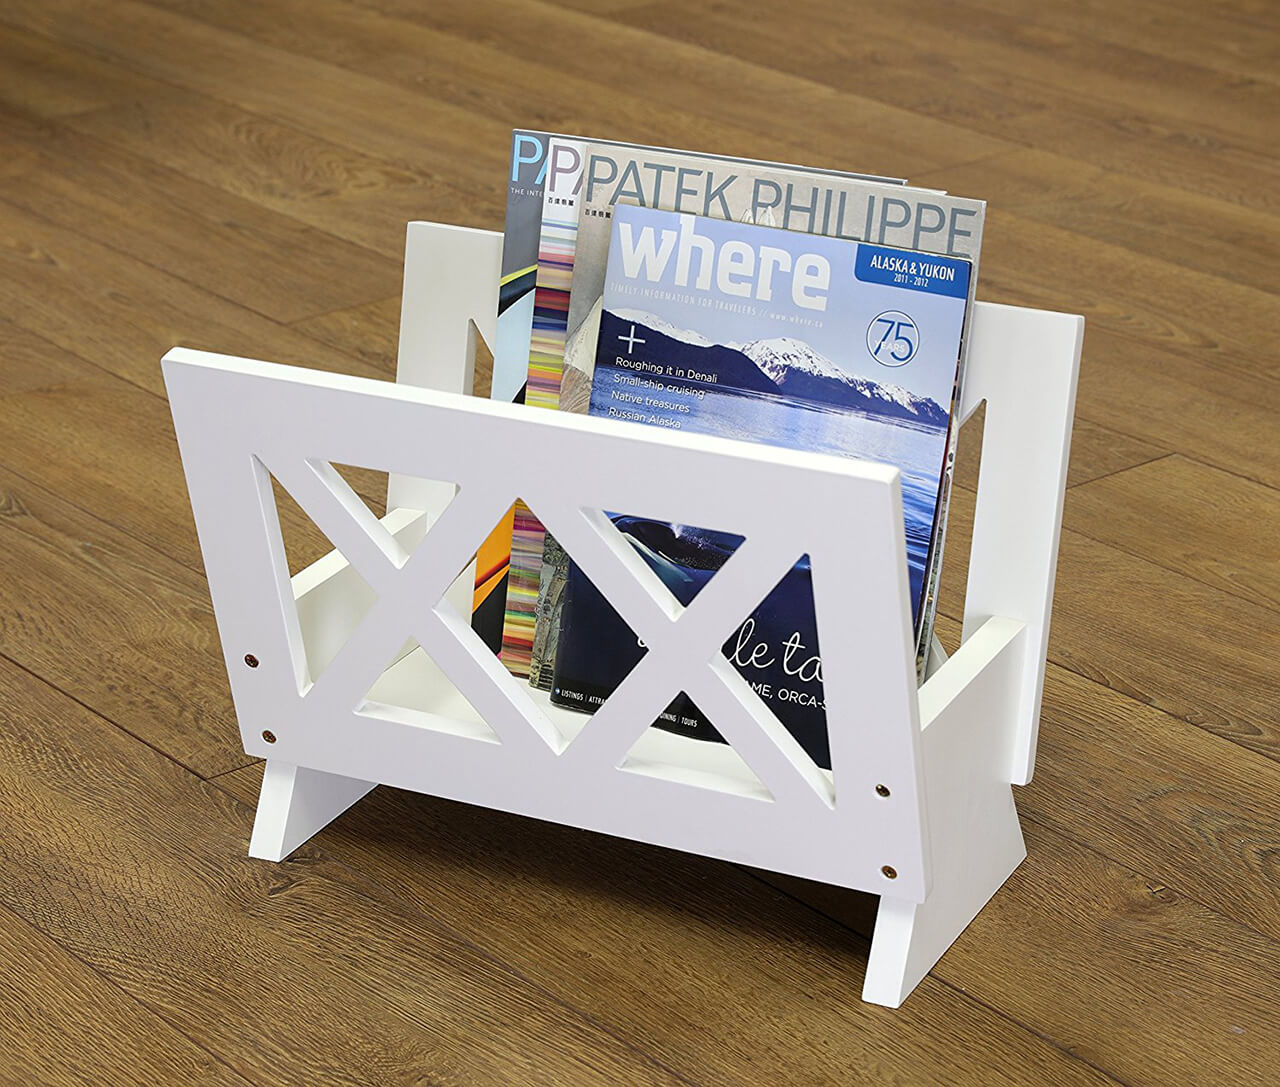 23 Best Bathroom Magazine Rack Ideas To Save Space In 2019